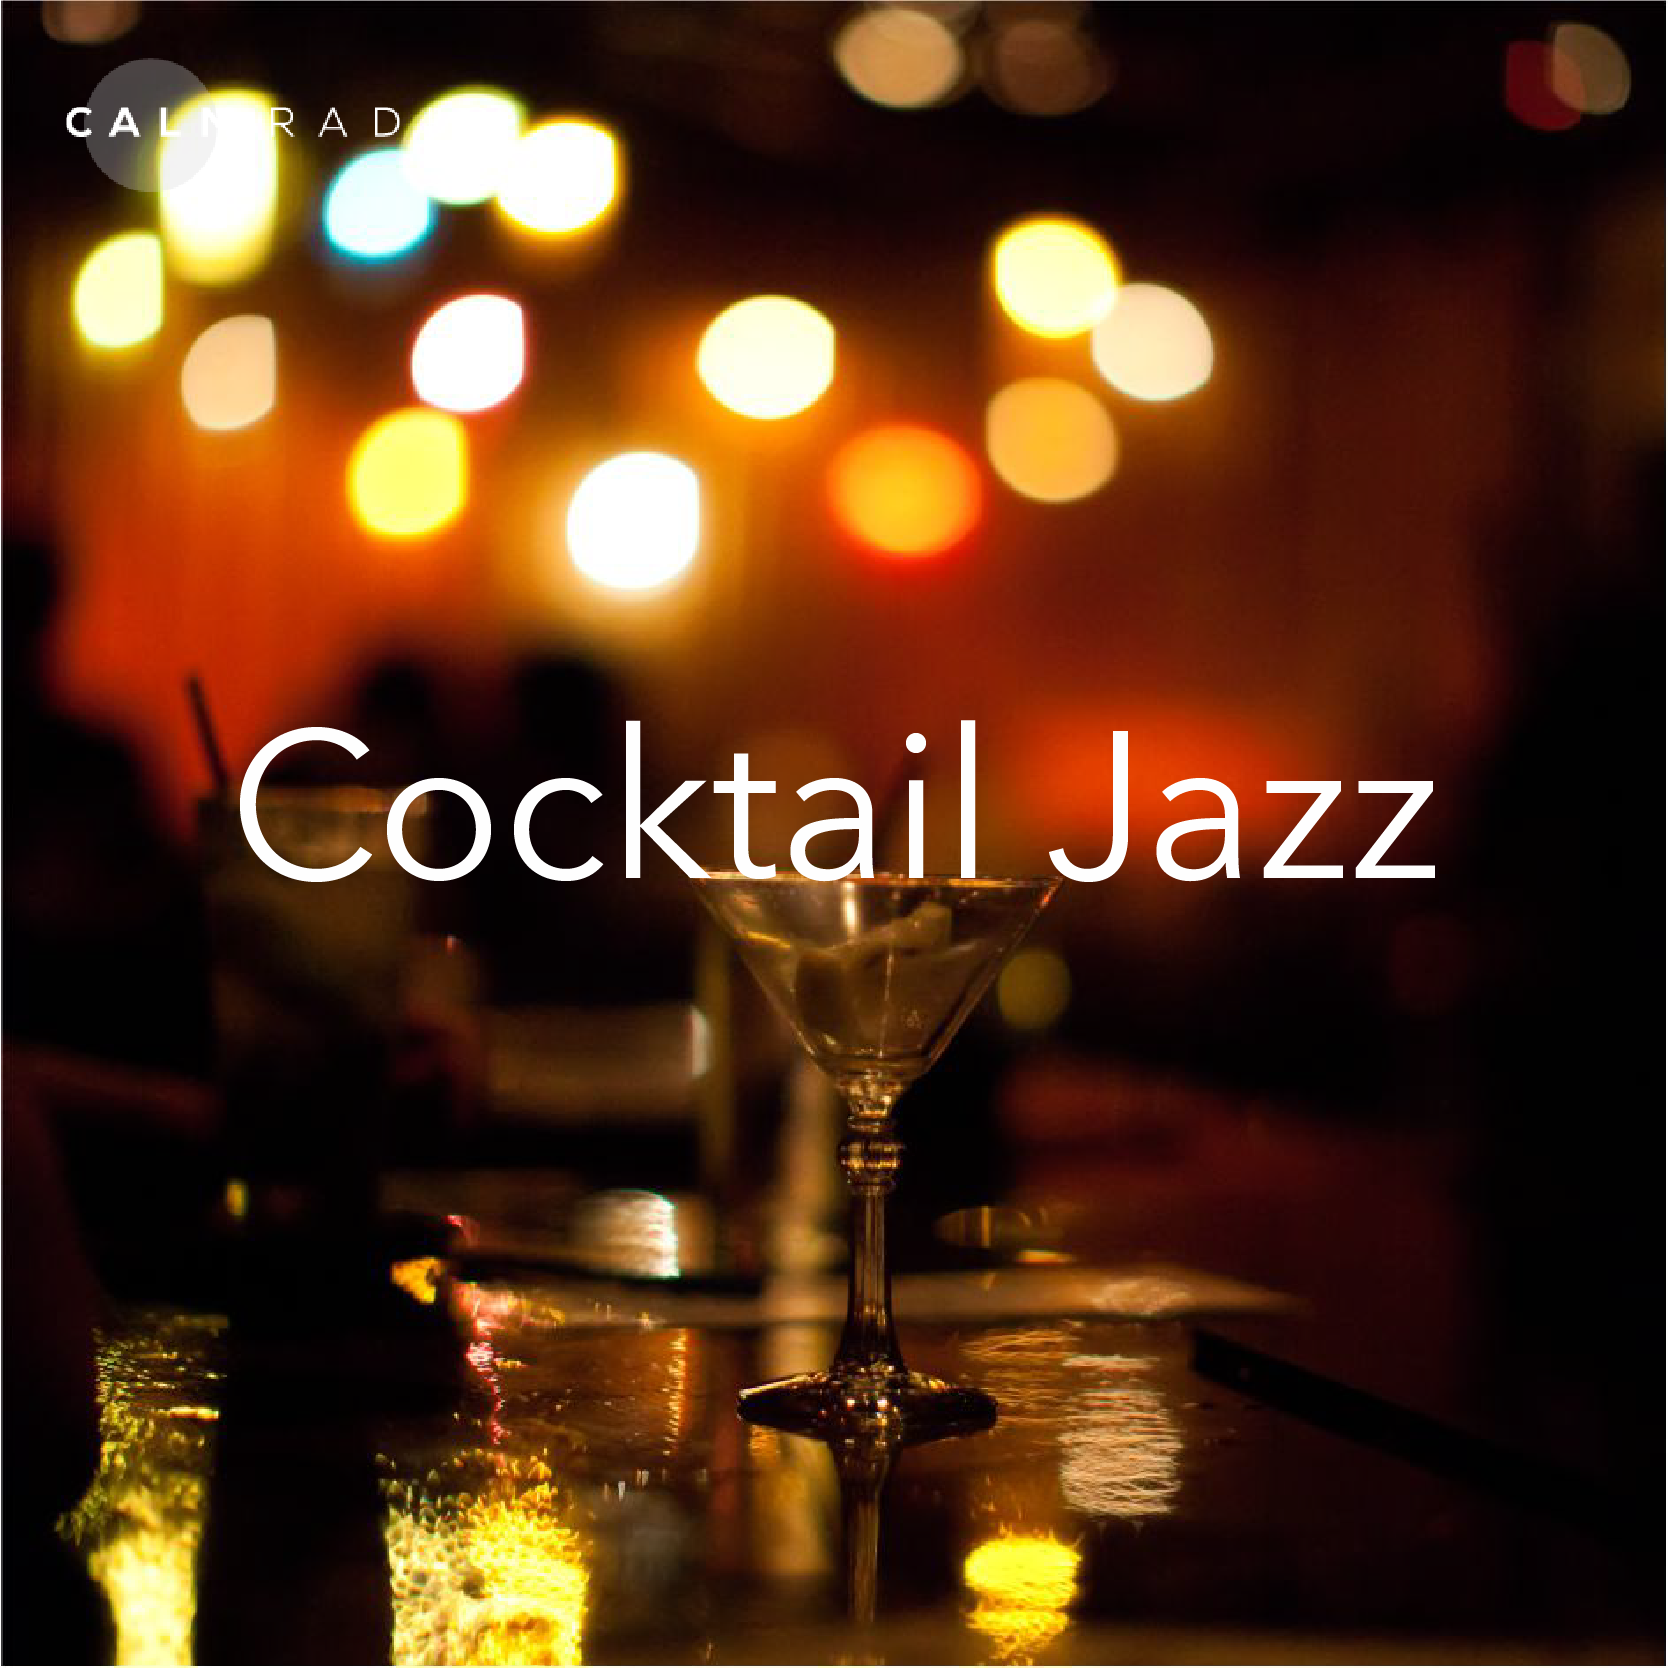 CALMRADIO.COM - Cocktail Jazz